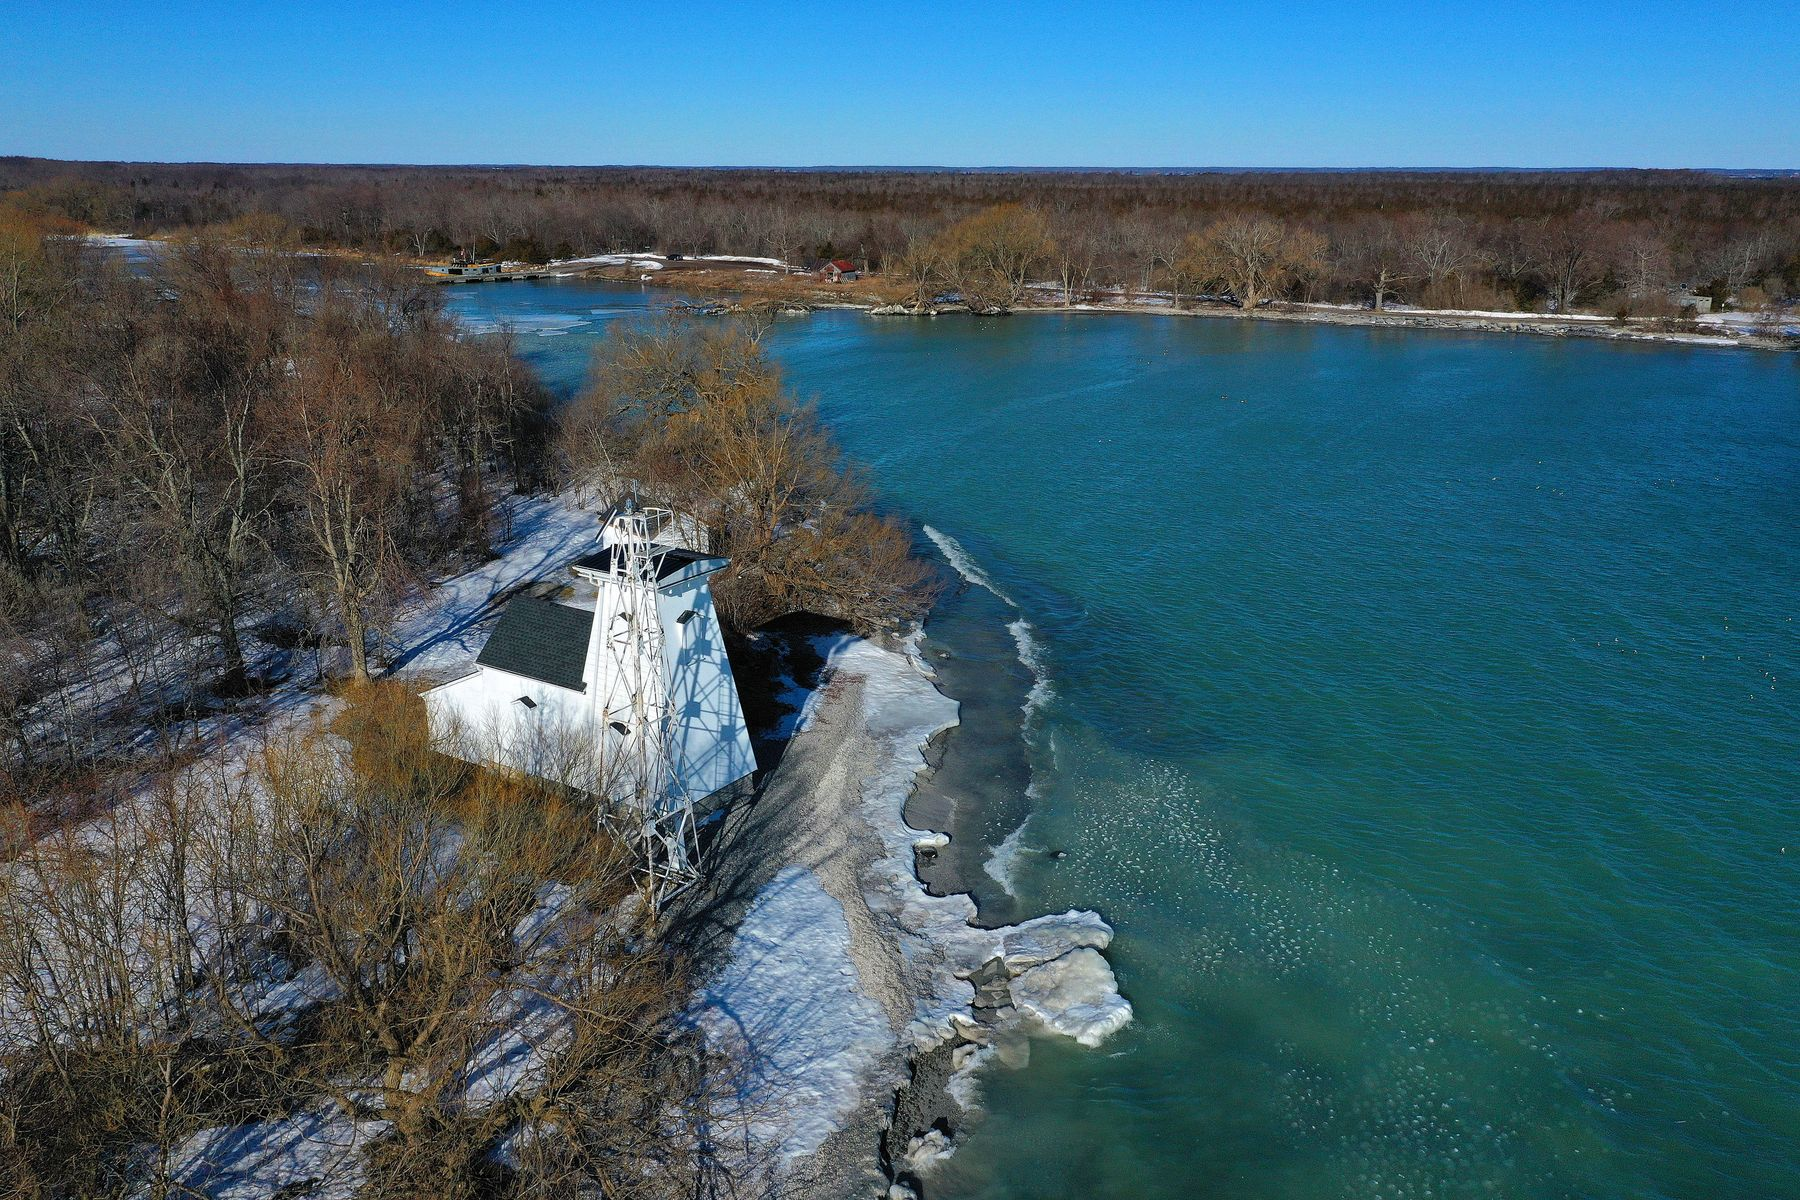 shoreline of Lake Ontario in Prince Edward County with a lighthouse, on a winter's day